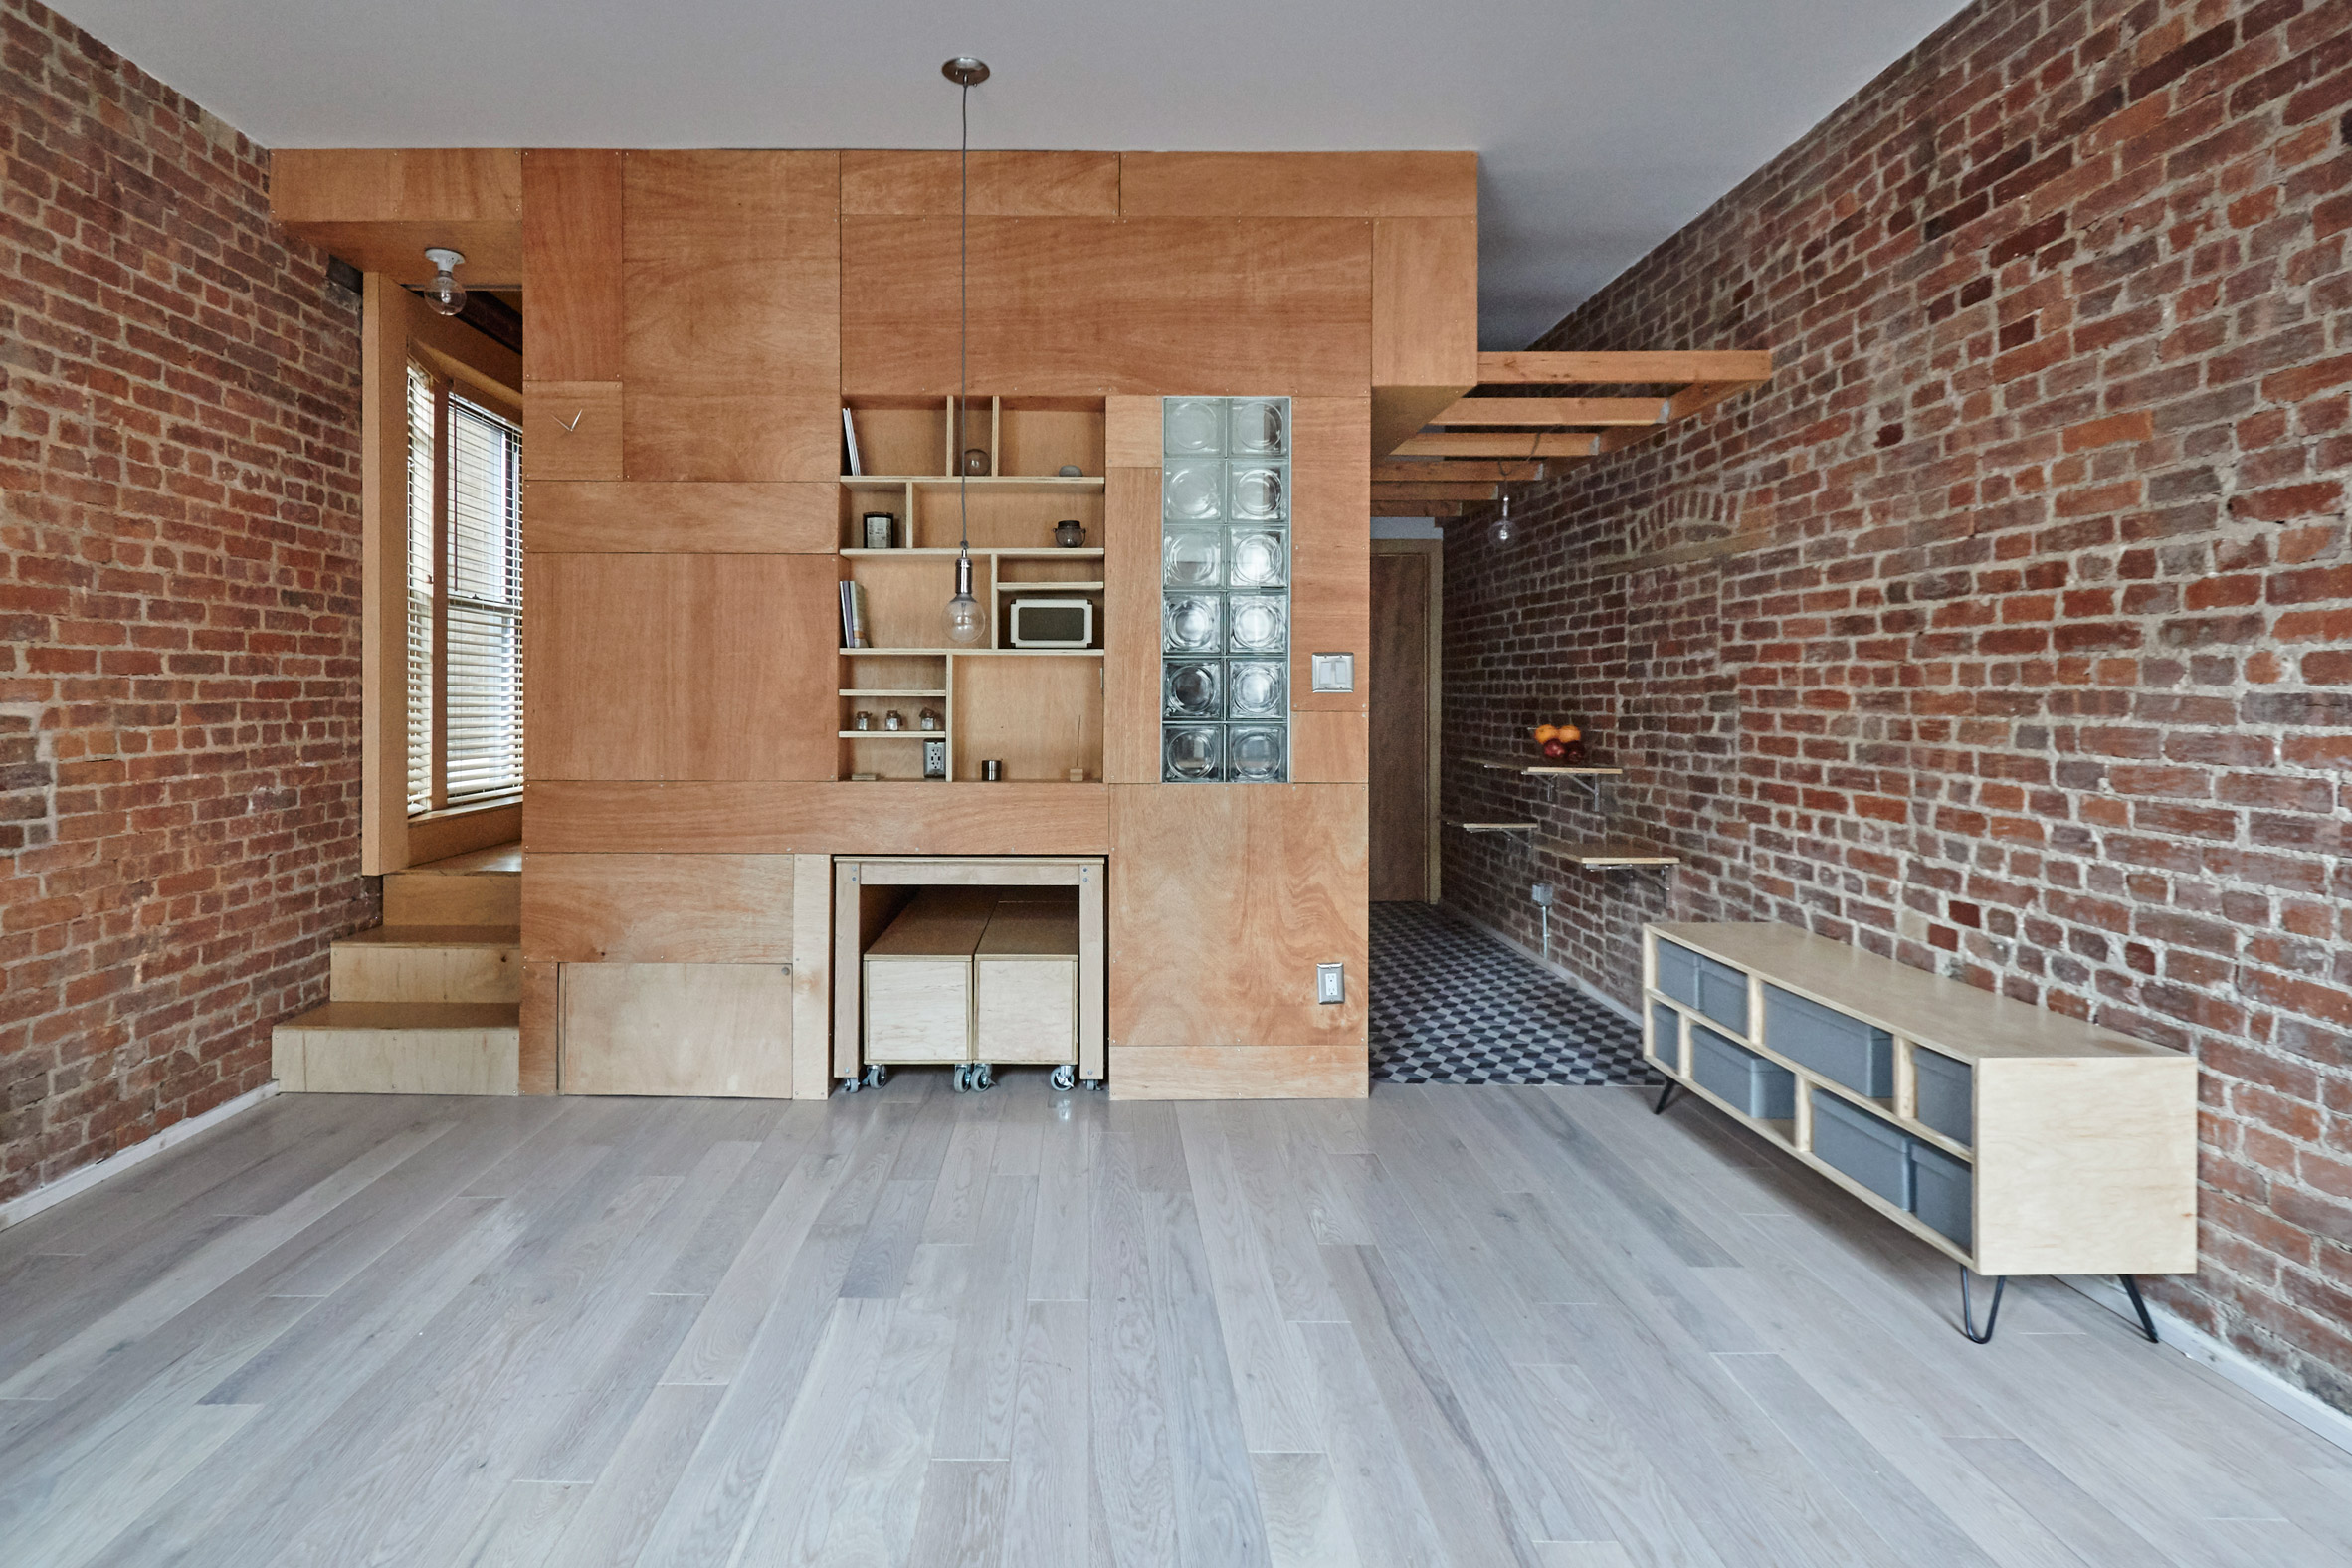 Peter Kostelov creates transformable rooms for New York apartment